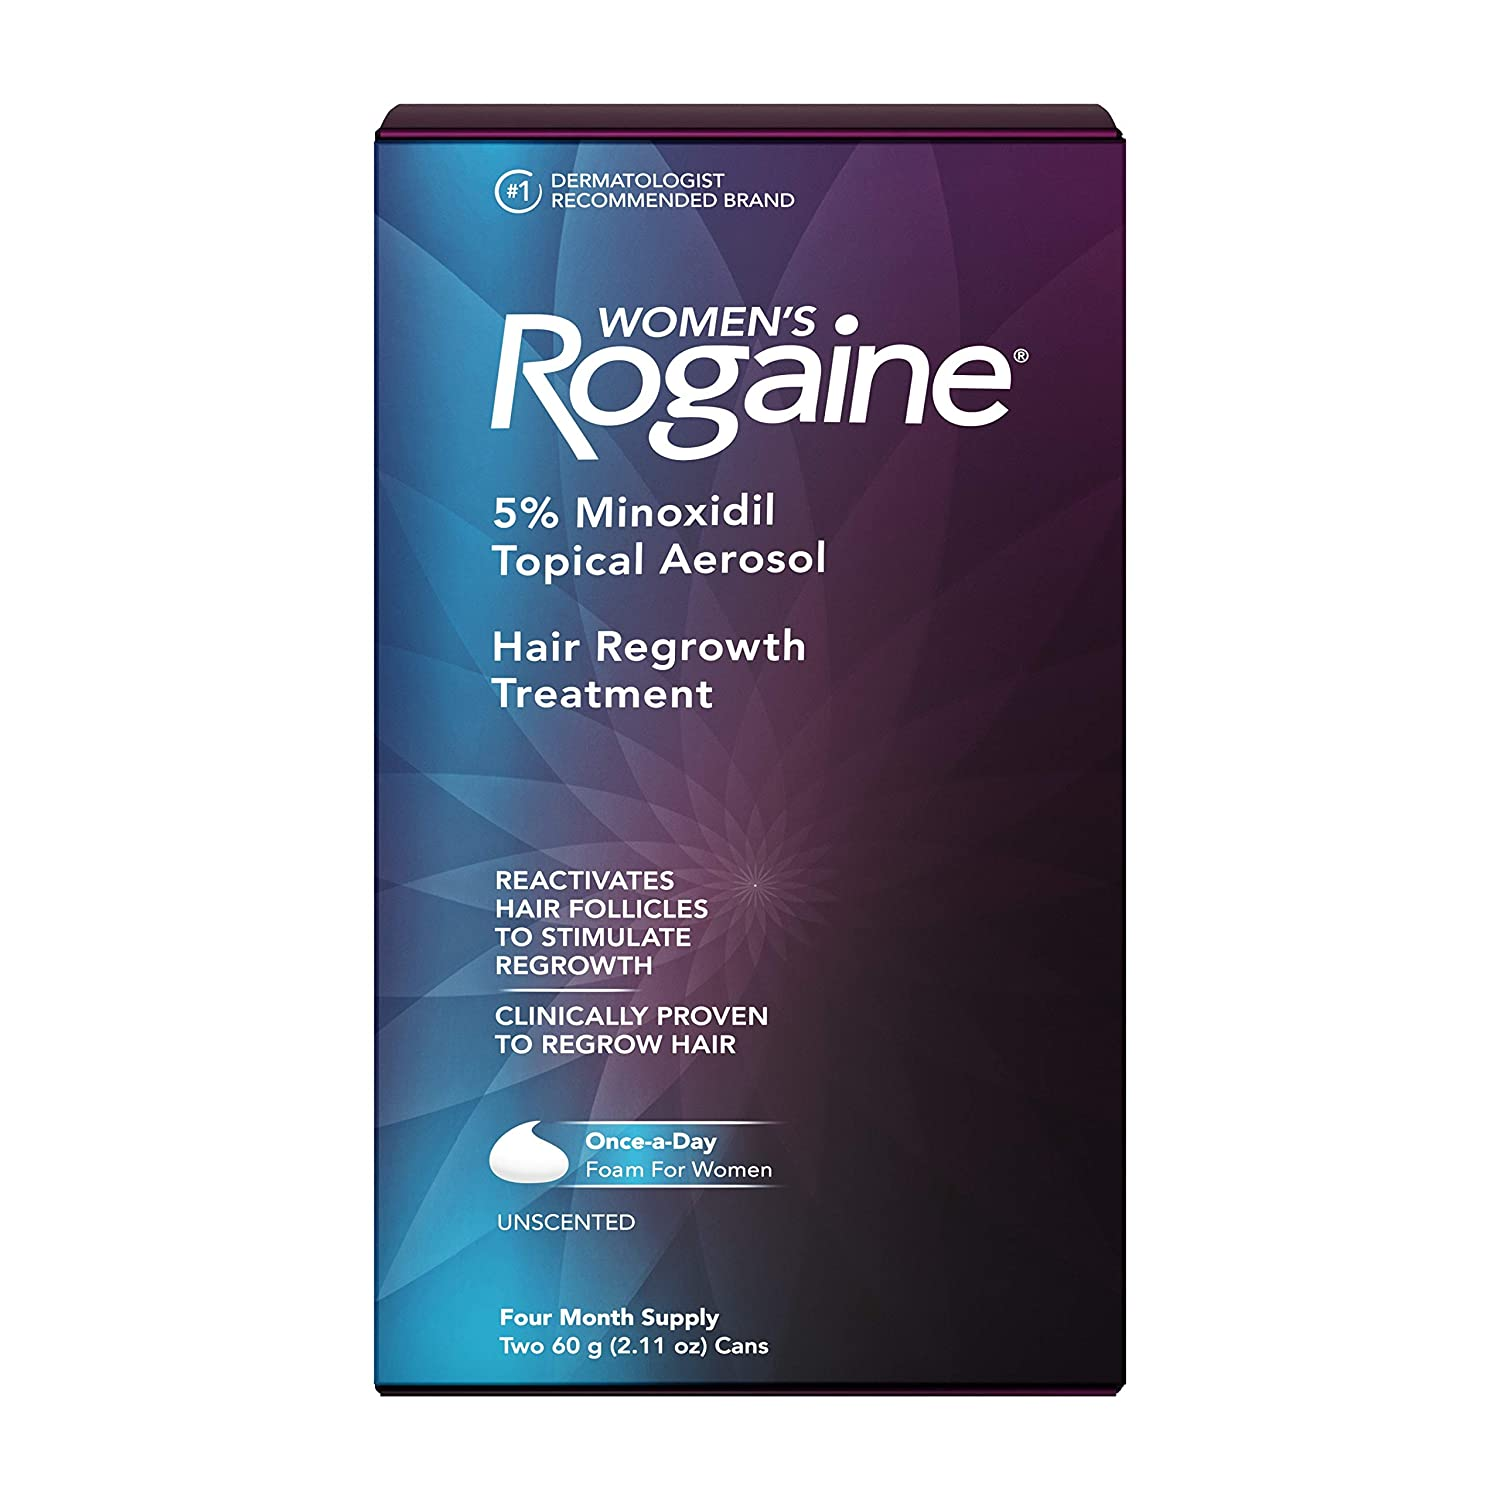 Women's Rogaine 5% Minoxidil Foam for Hair Thinning and Loss, Topical Treatment for Women's Hair Regrowth, 4-Month Supply : Beauty